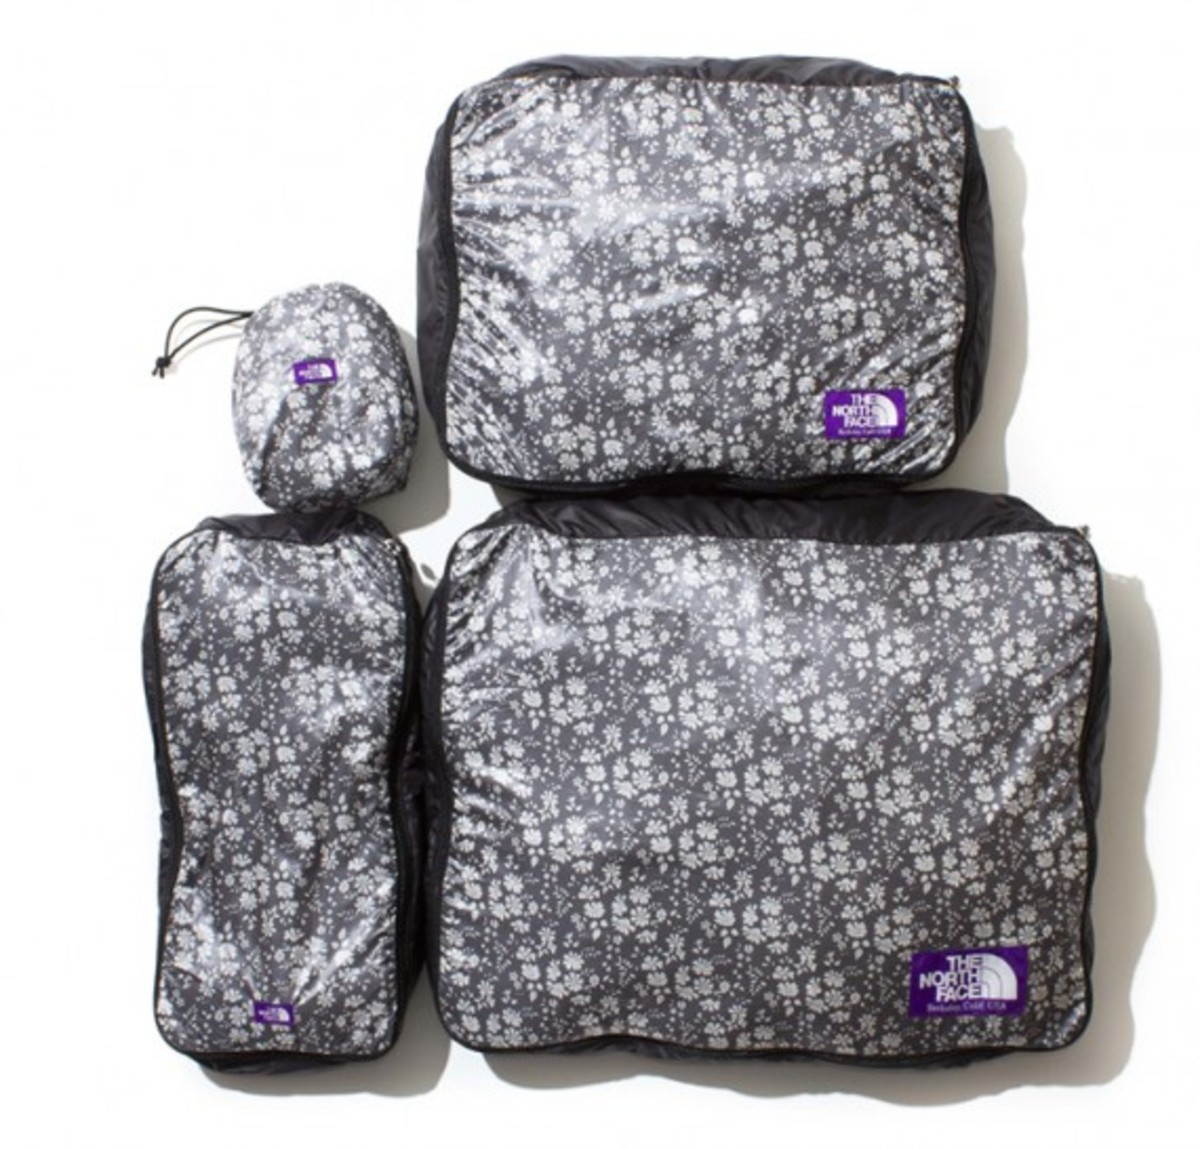 liberty-the-north-face-purple-label-black-and-white-collection-014